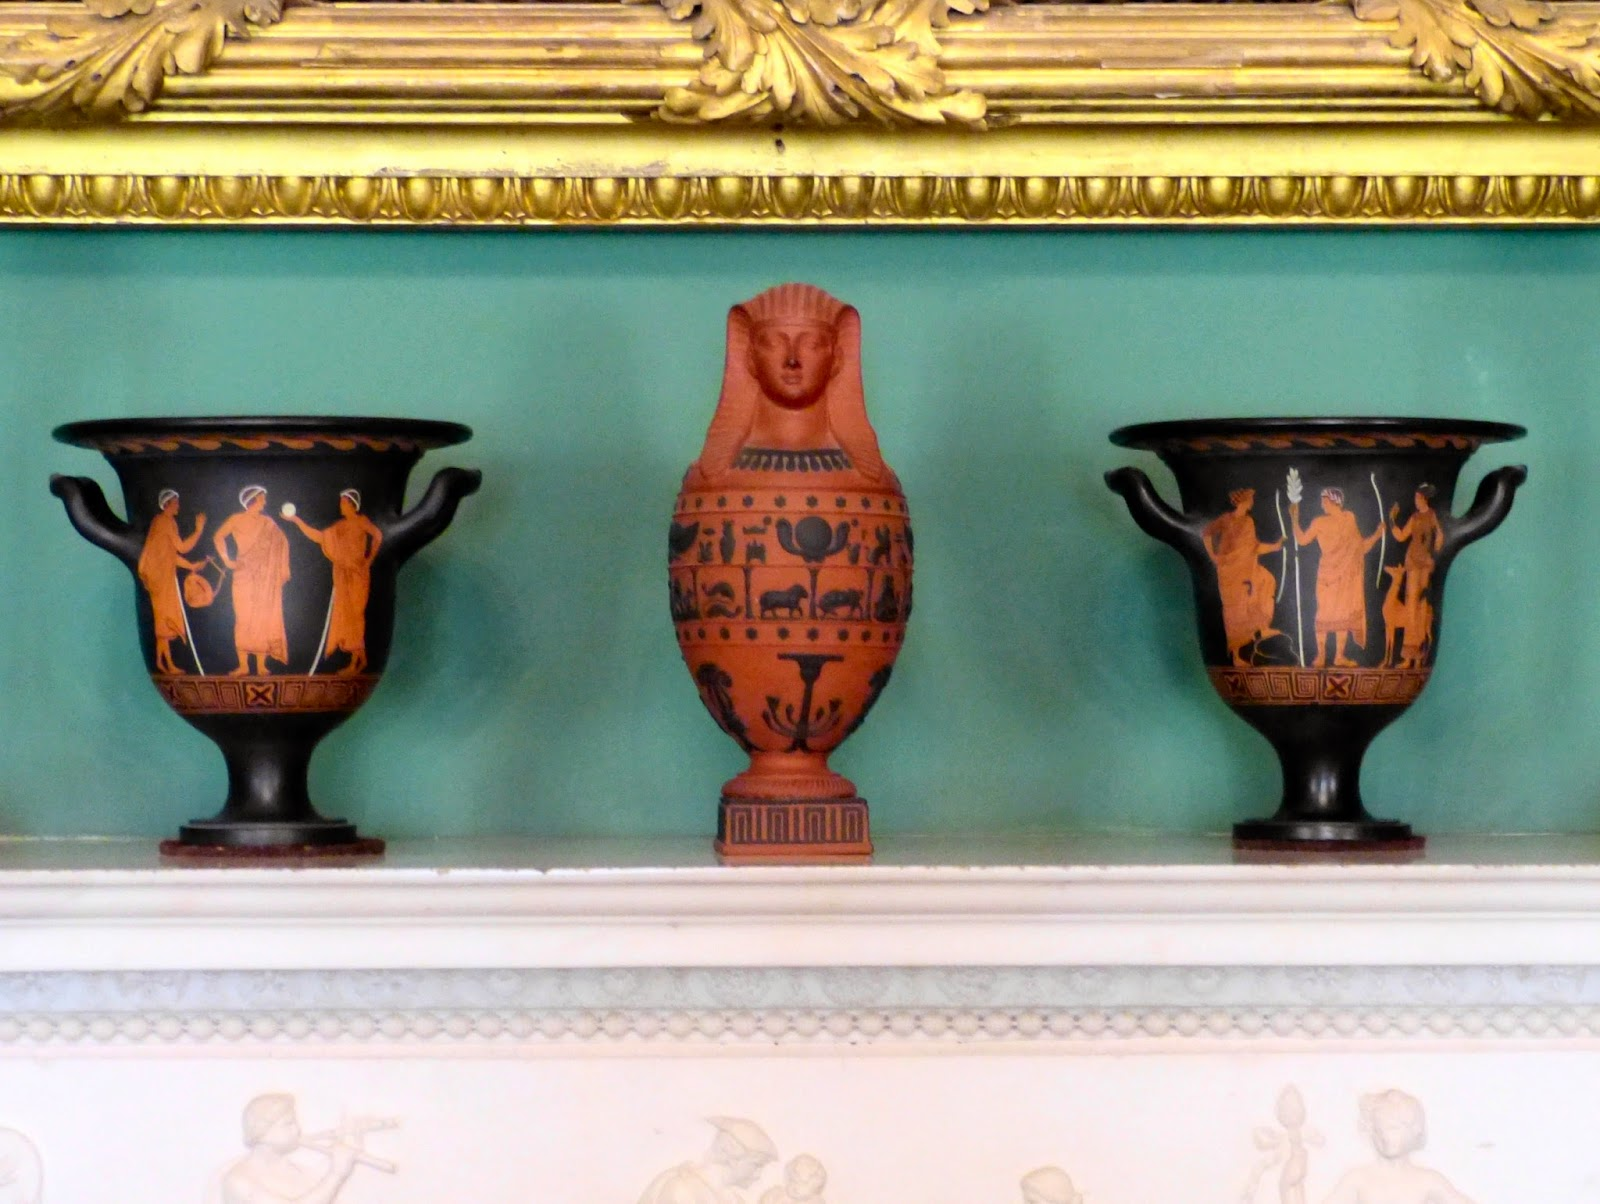 Wedgwood pots on the mantelpiece in the Picture Room, Stourhead